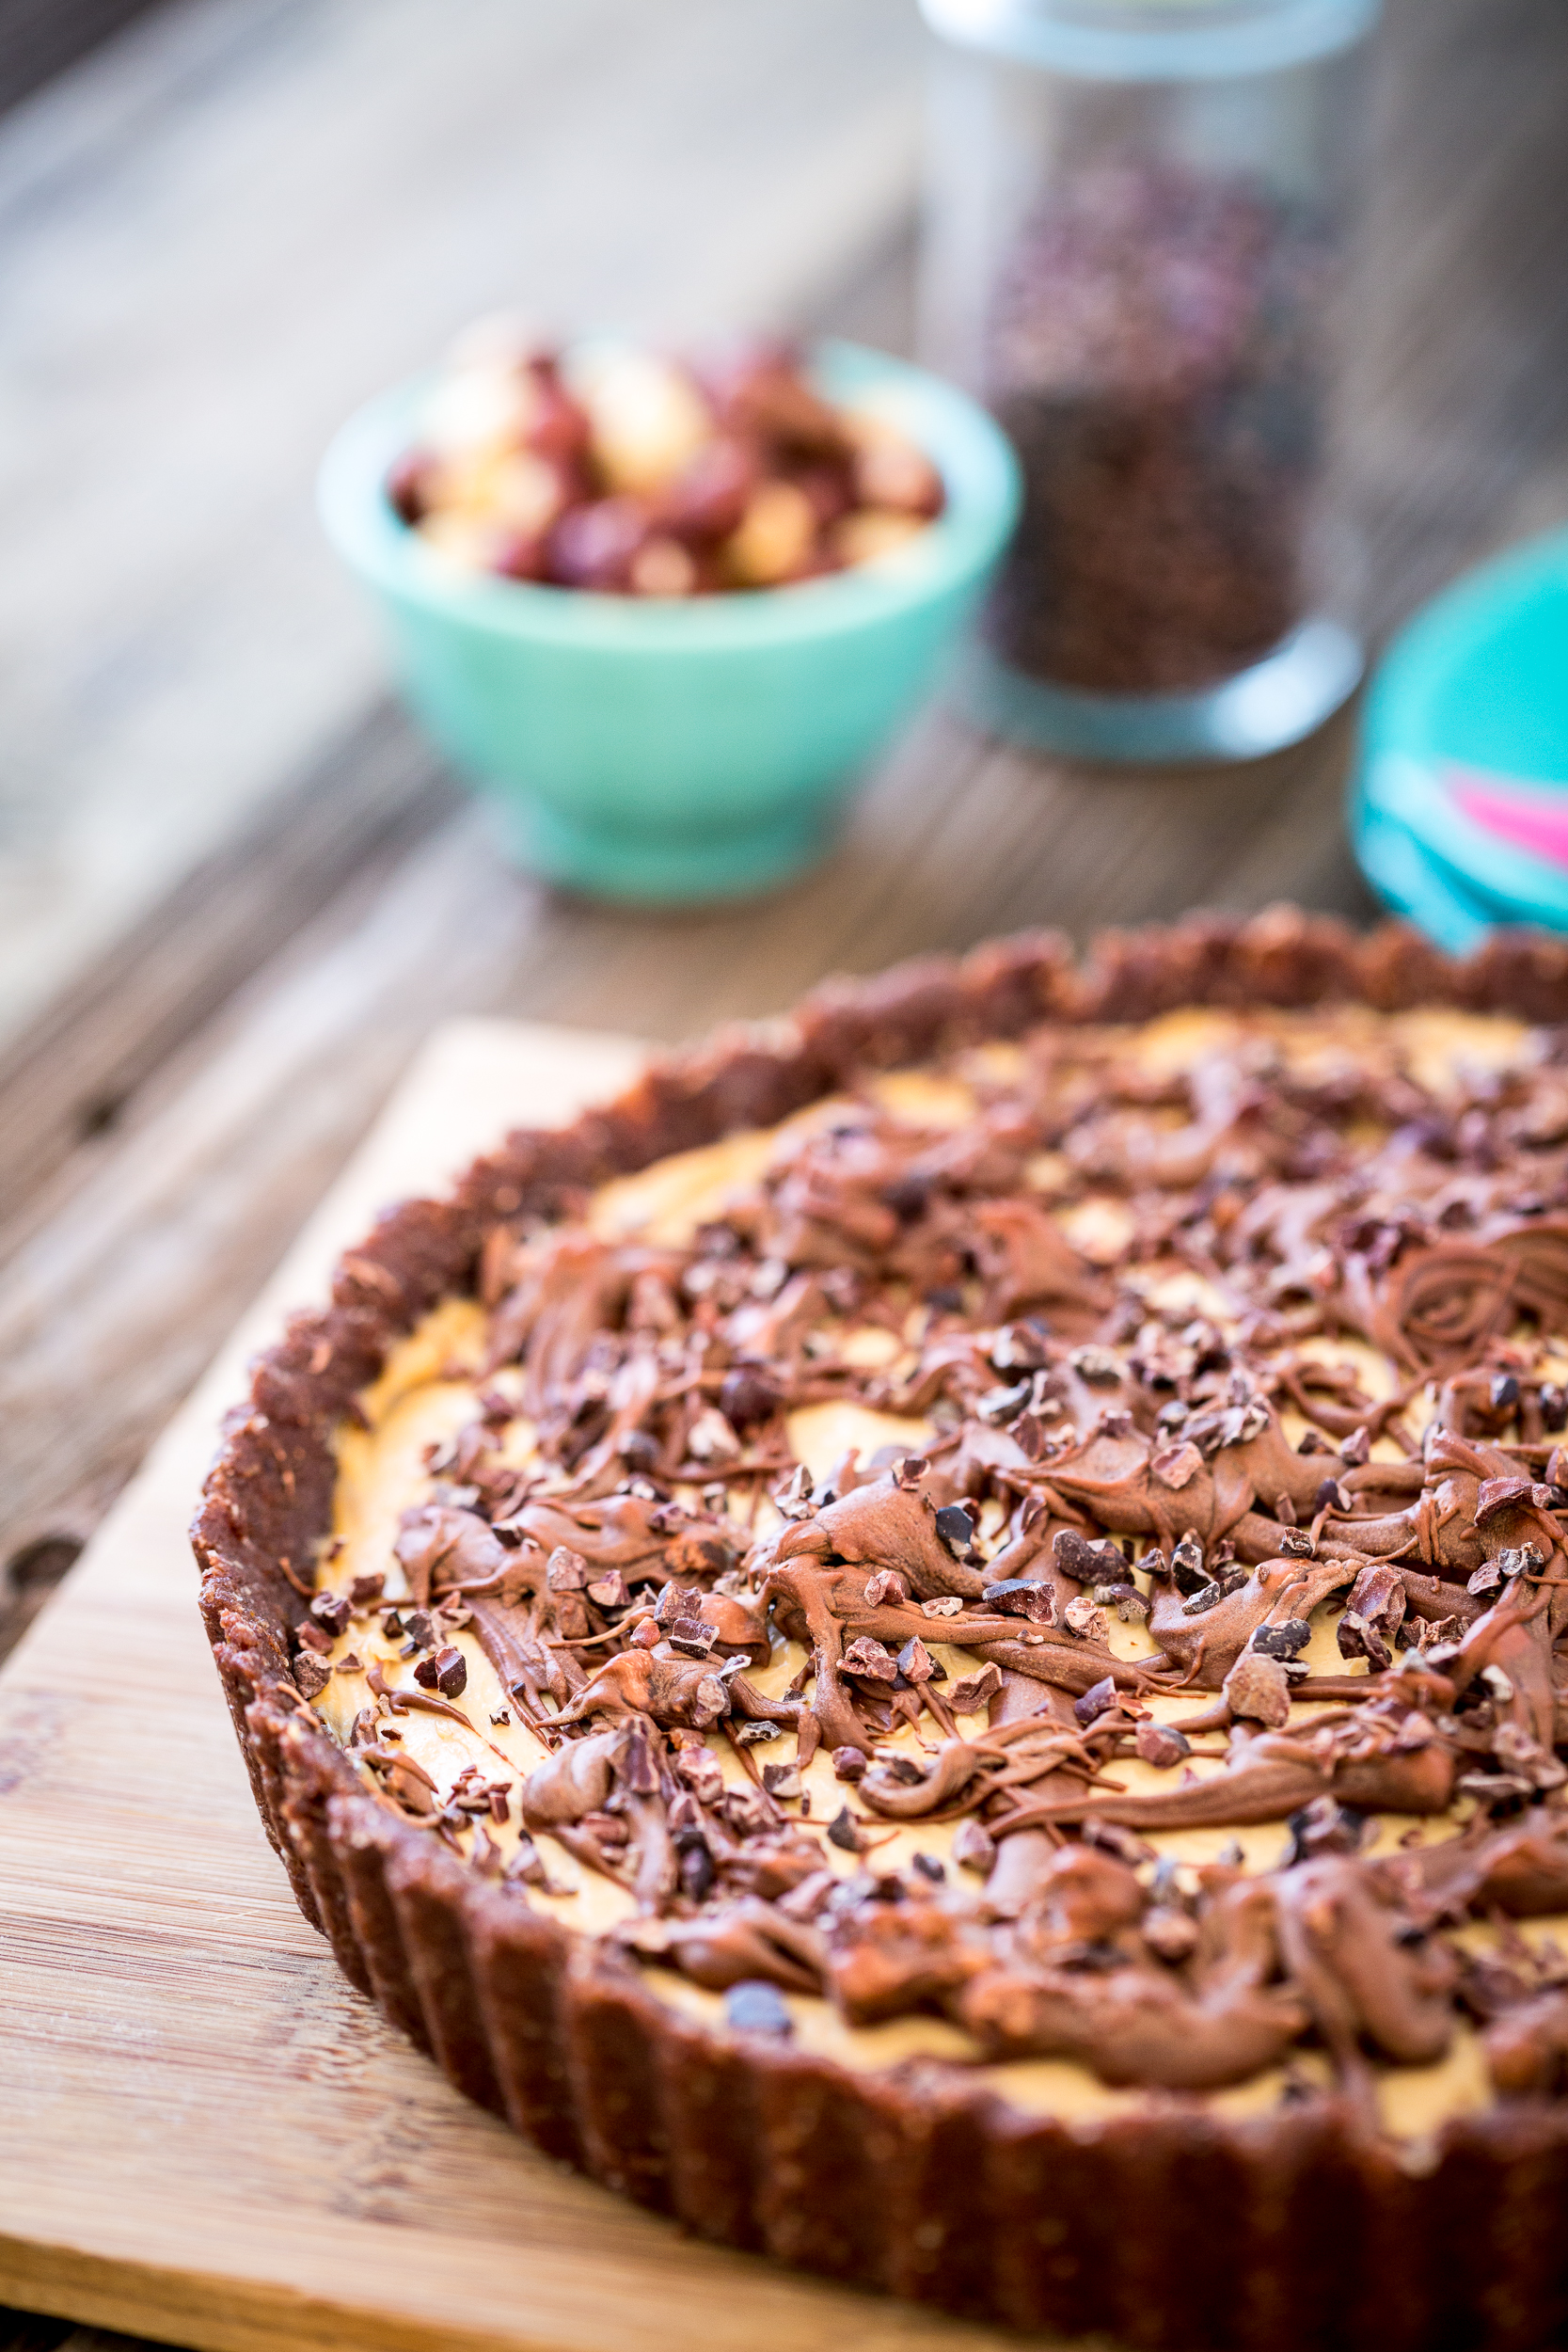 No Bake Chocolate Peanut Butter Tart & Big News!